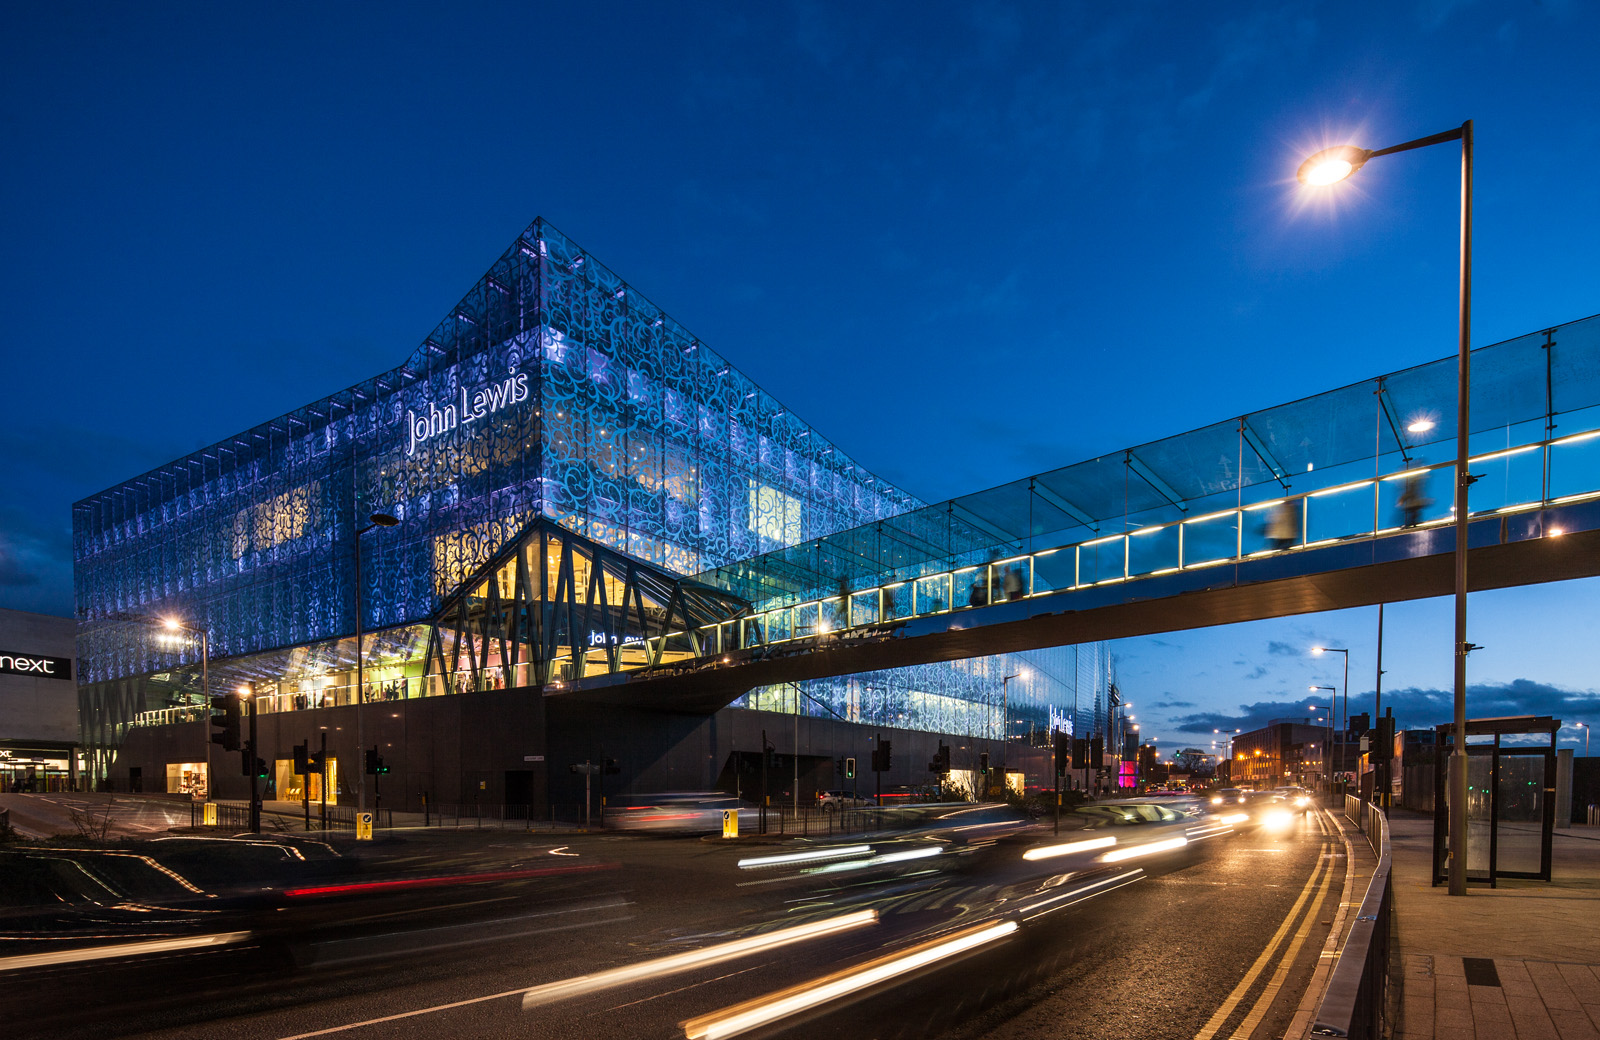 John Lewis store, from the ring road at dusk, Leicester